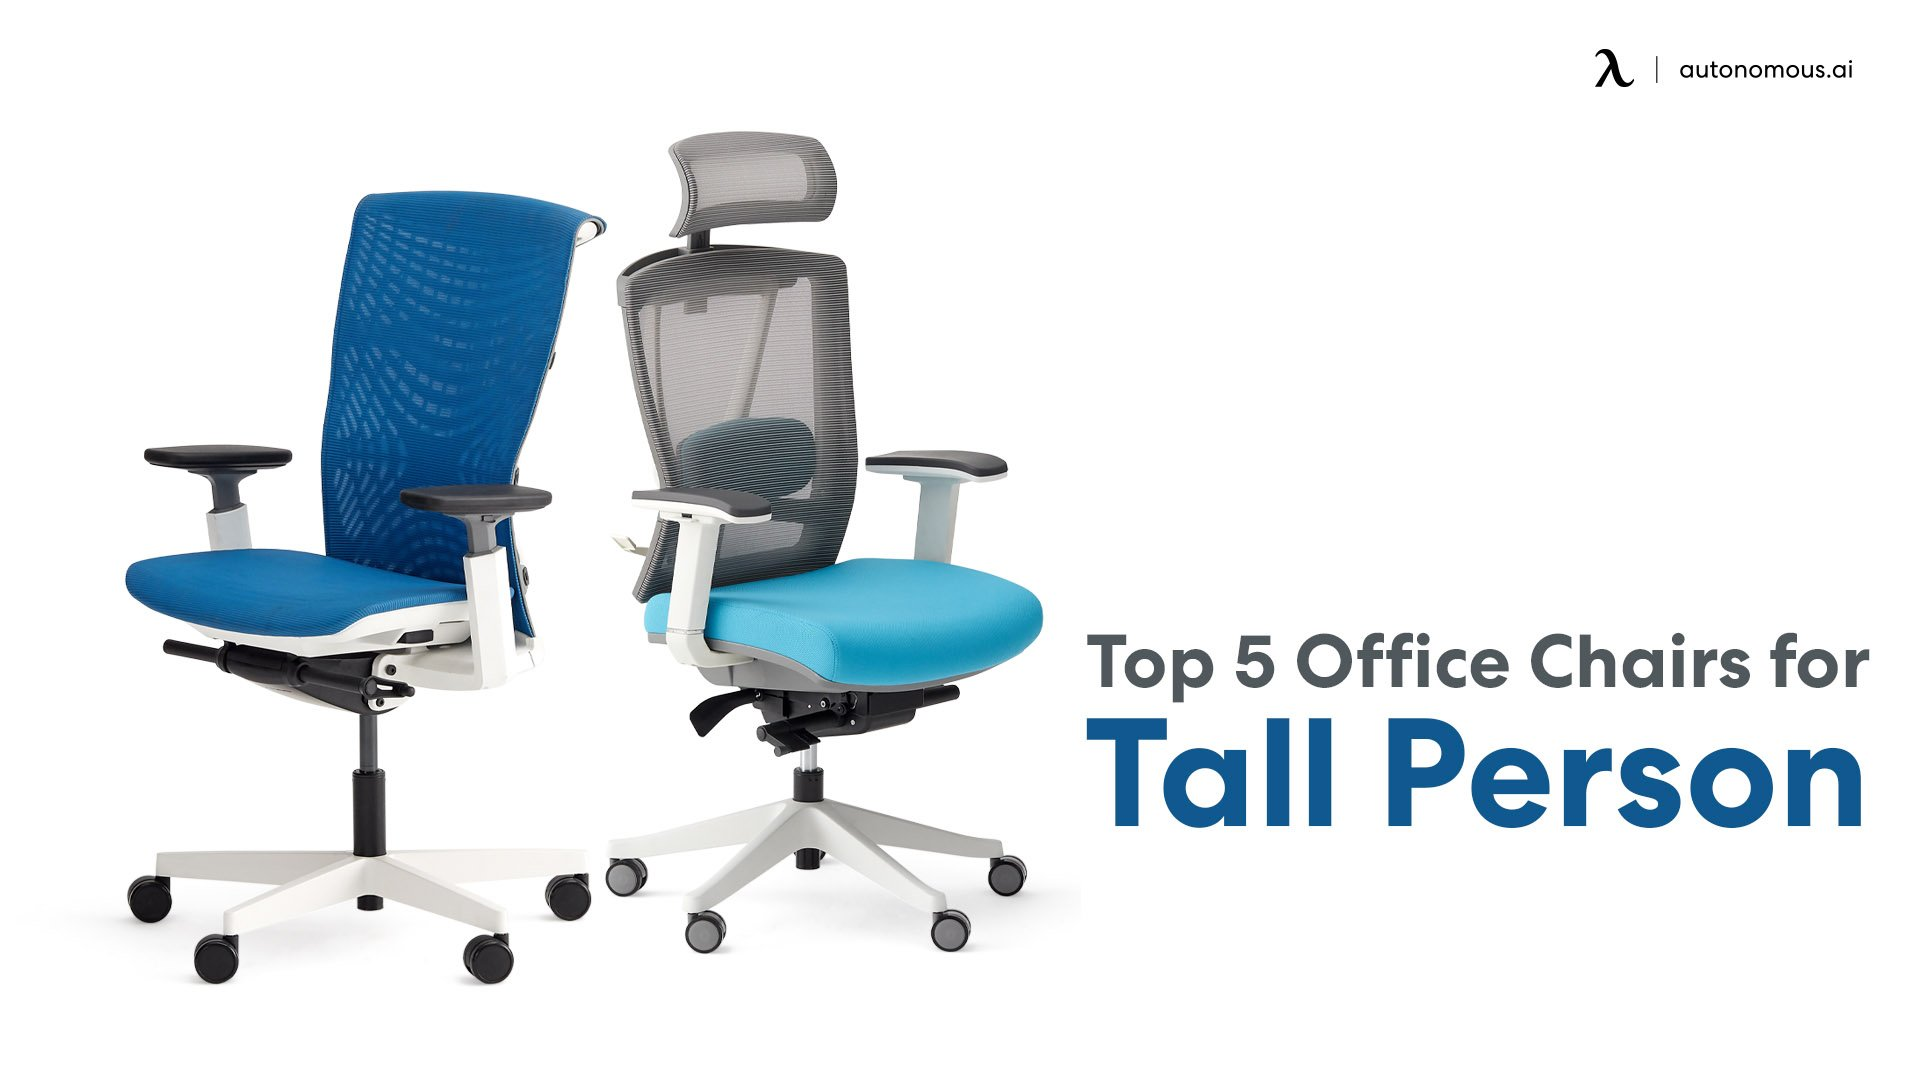 Top 5 Office Chairs for Tall Person